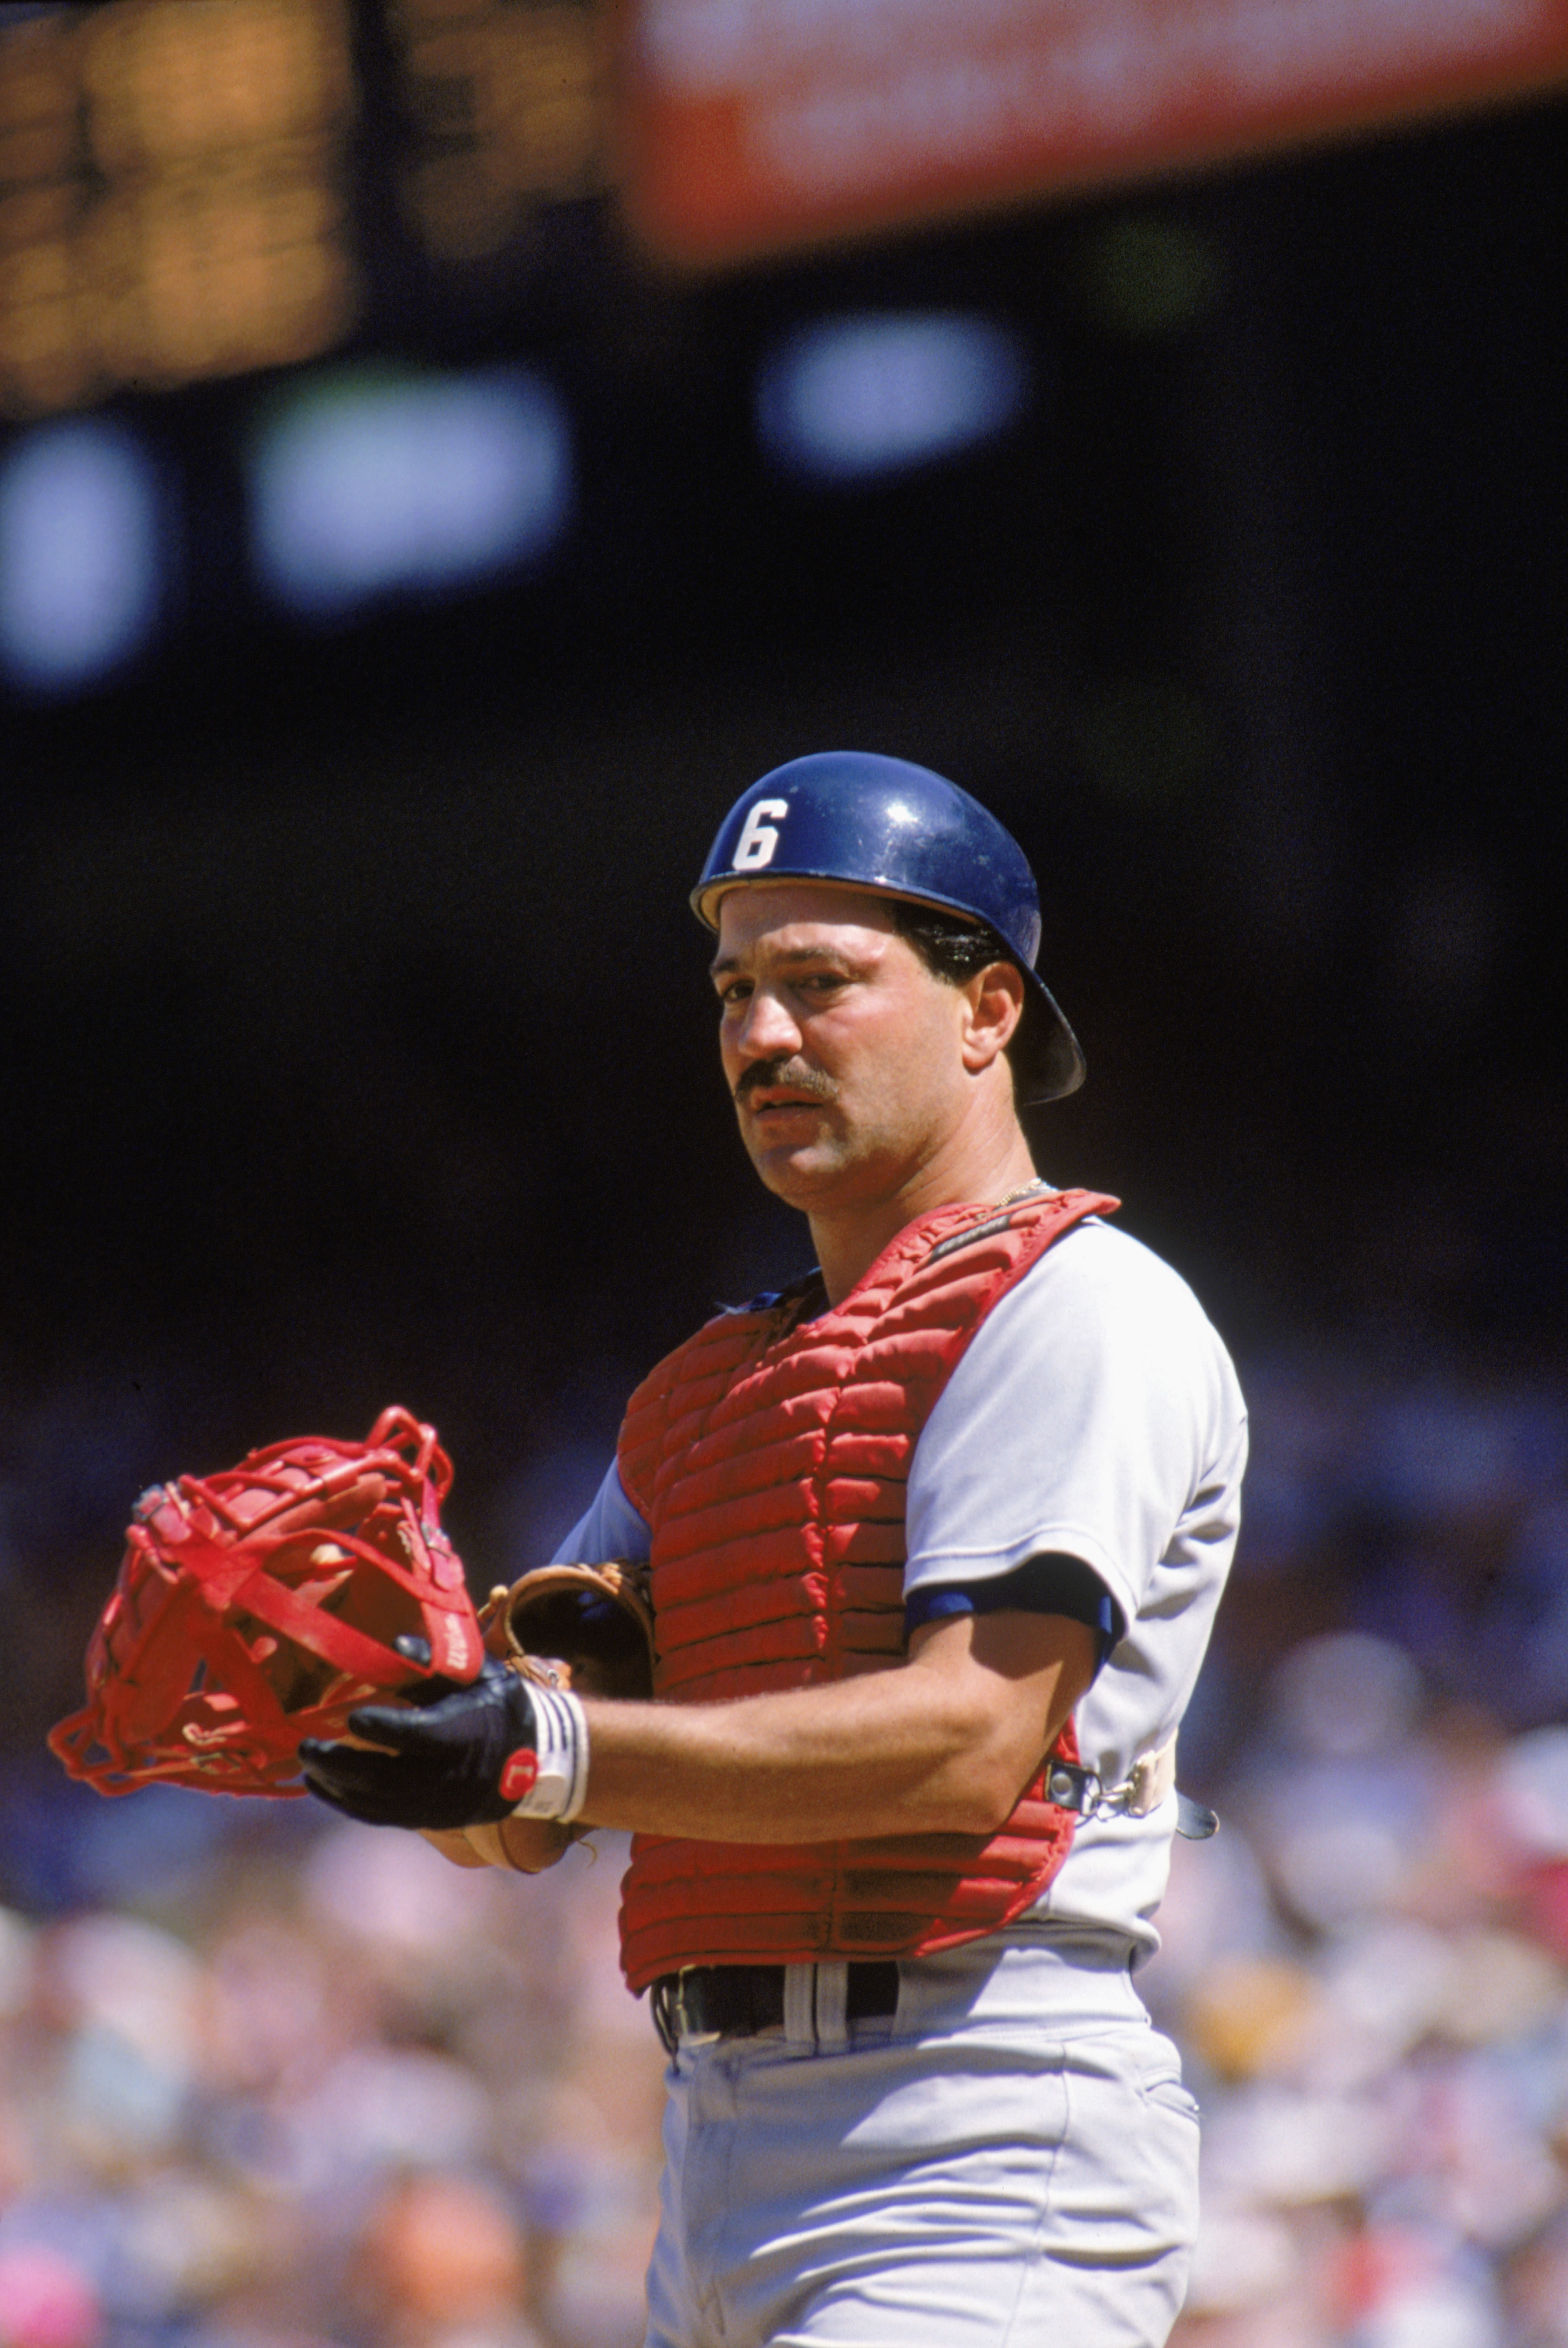 1989:  Rick Cerone of the Boston Red Sox prepares for play during the 1989 season. (Photo by Scott Halleran/Getty Images)